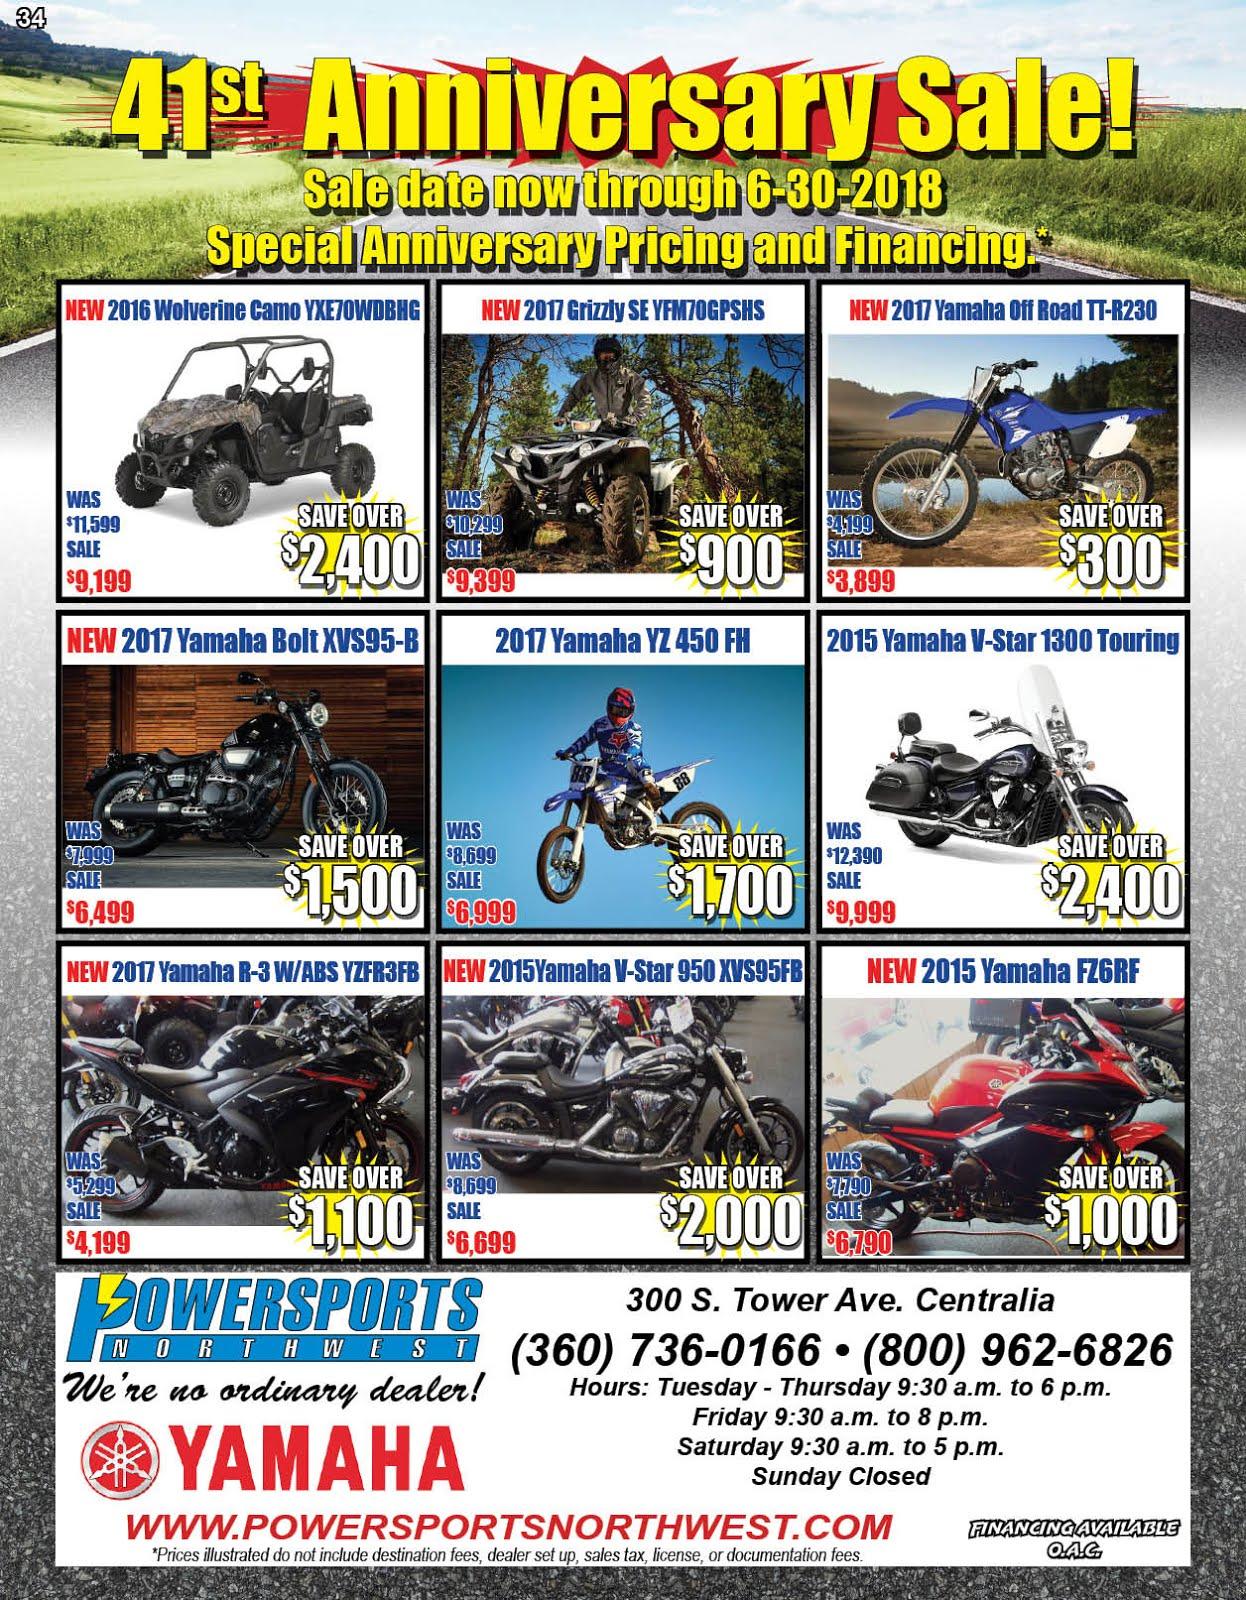 Powersports Northwest 41st Anniversary Sale!!